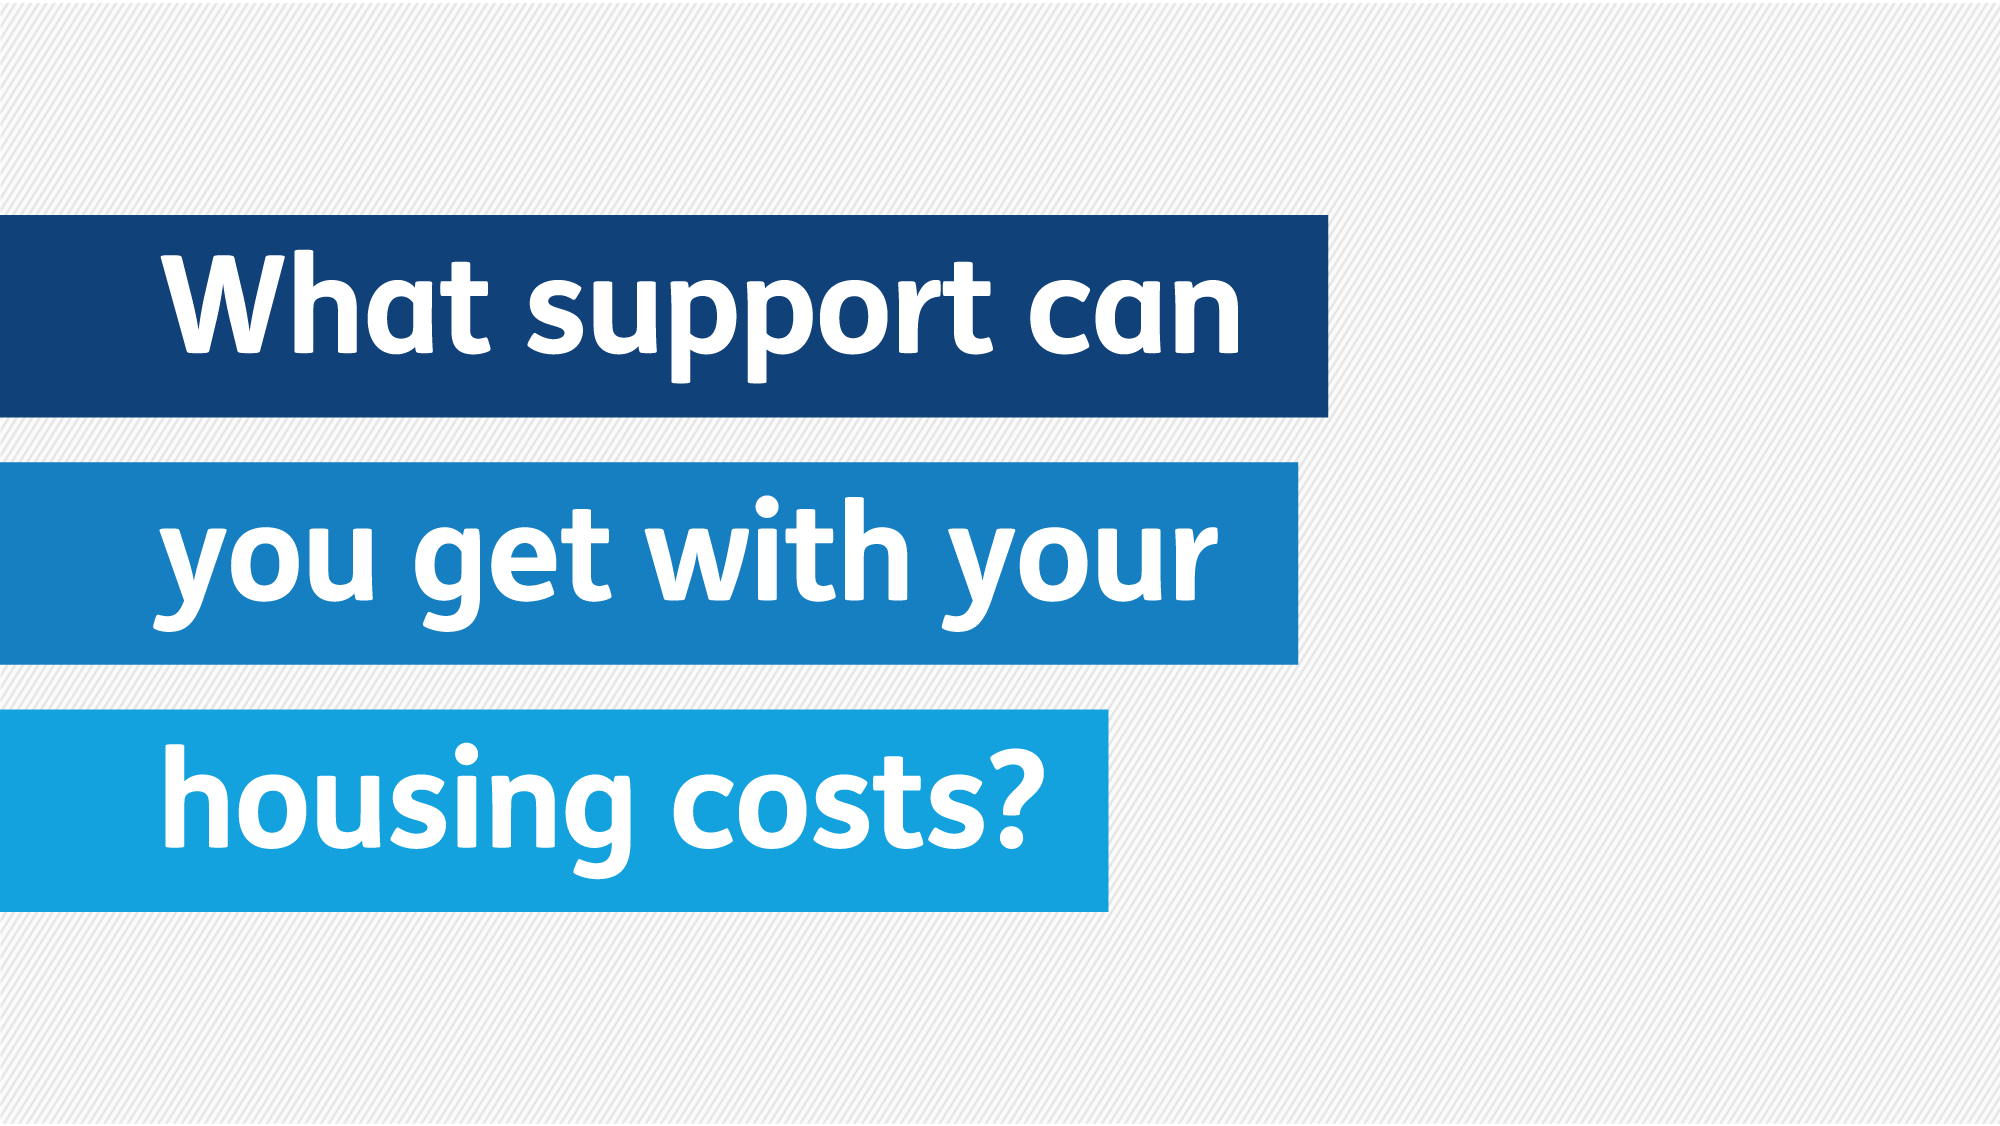 What support can you get with your housing costs?